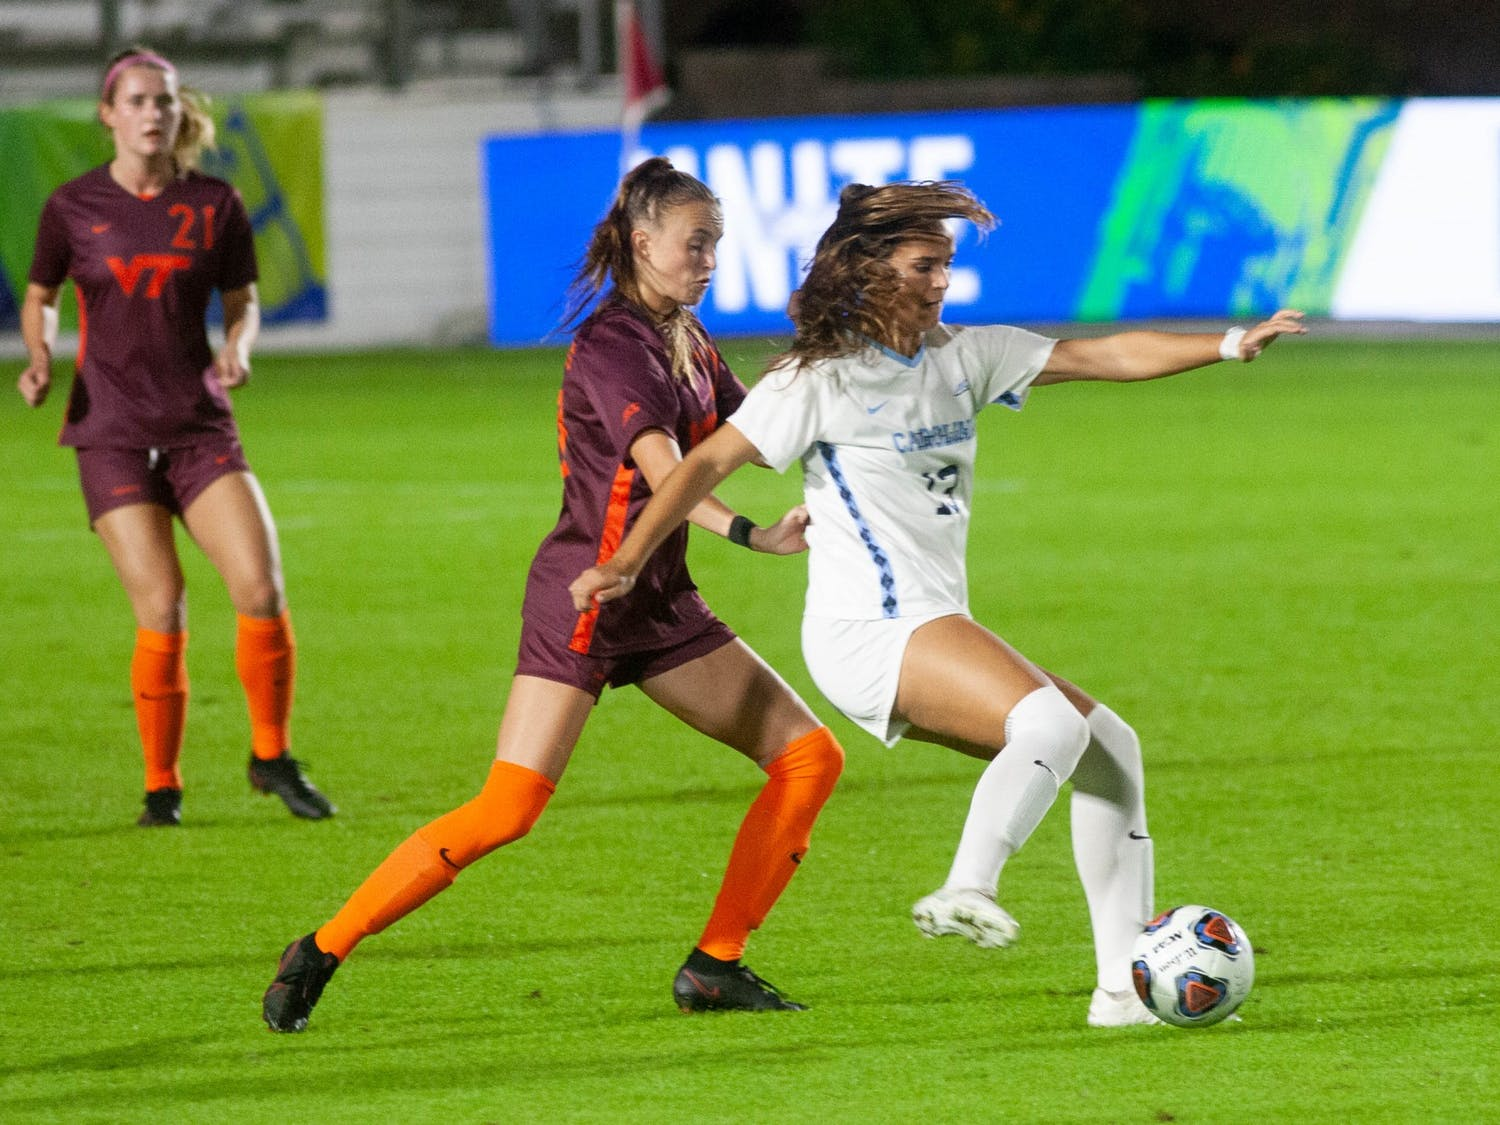 UNC sophomore forward Isabel Cox (13) kicks the ball at ACC tournament game against Virginia Tech on Tuesday, Nov. 10, 2020 at the WakeMed Soccer Park. The Tar Heels beat the Hokies 1-0.